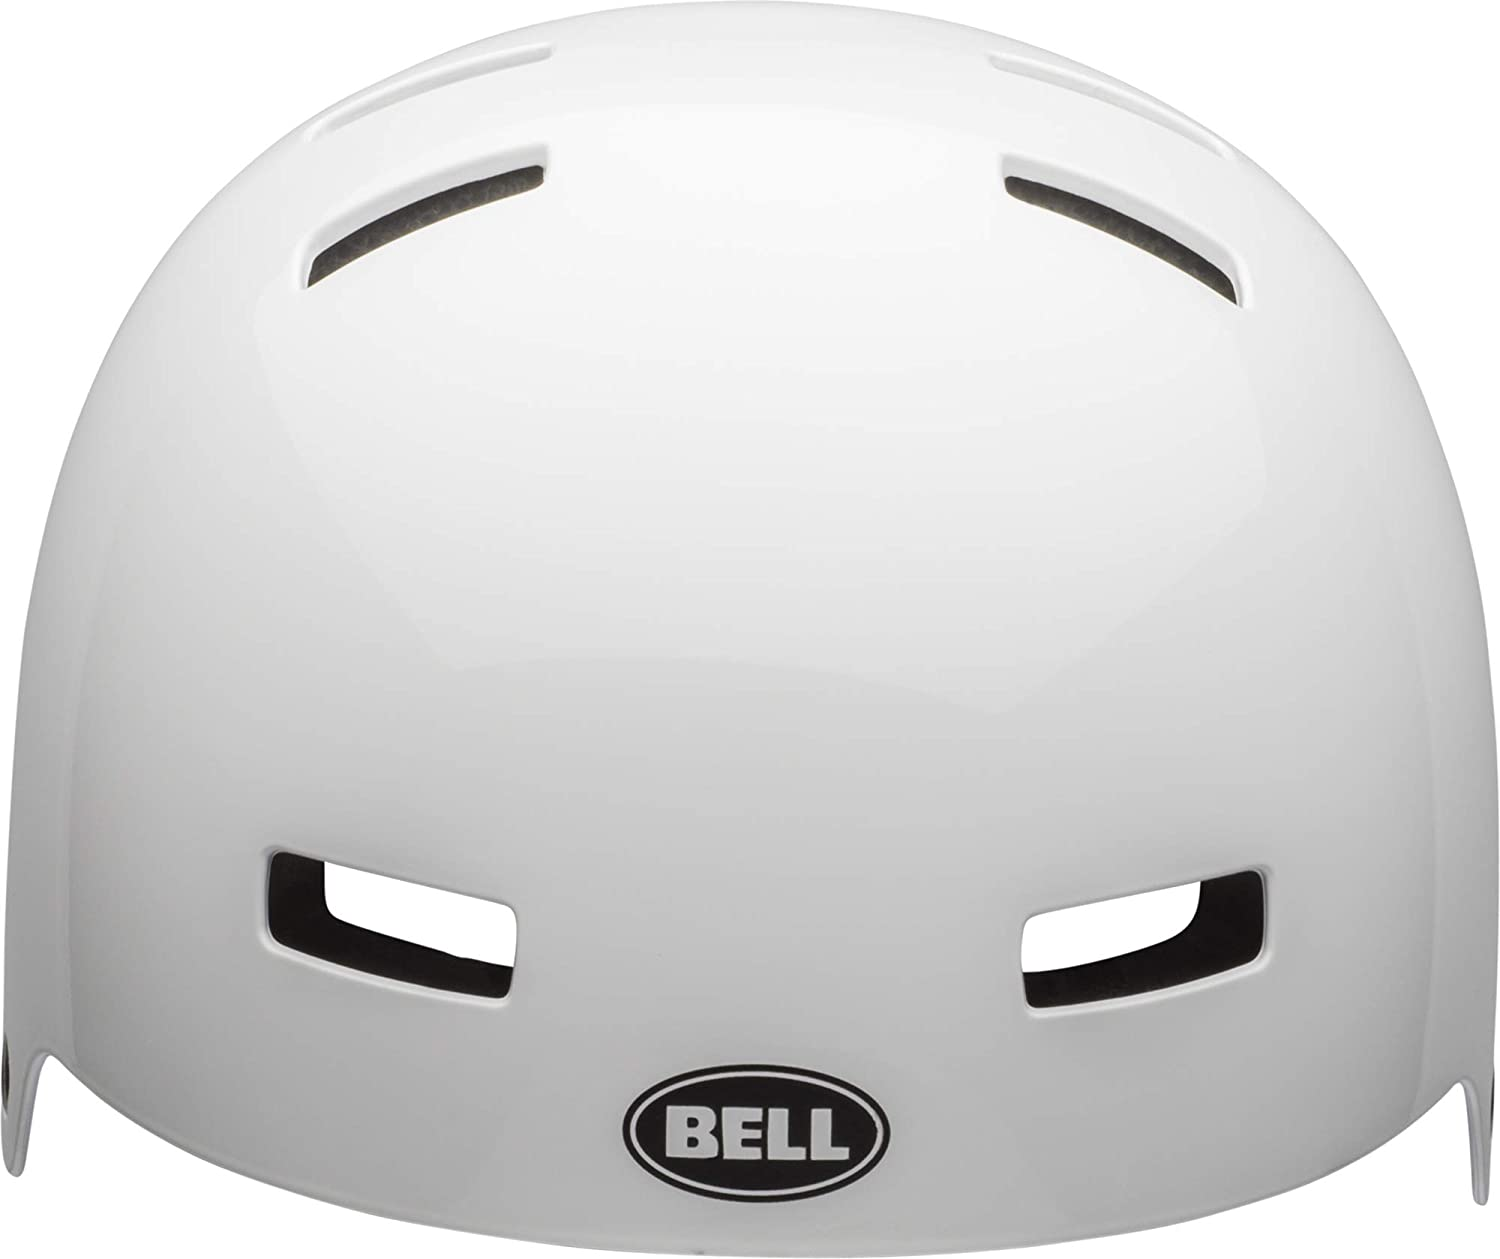 Bell Local Adult BMX /& Skate Helmet